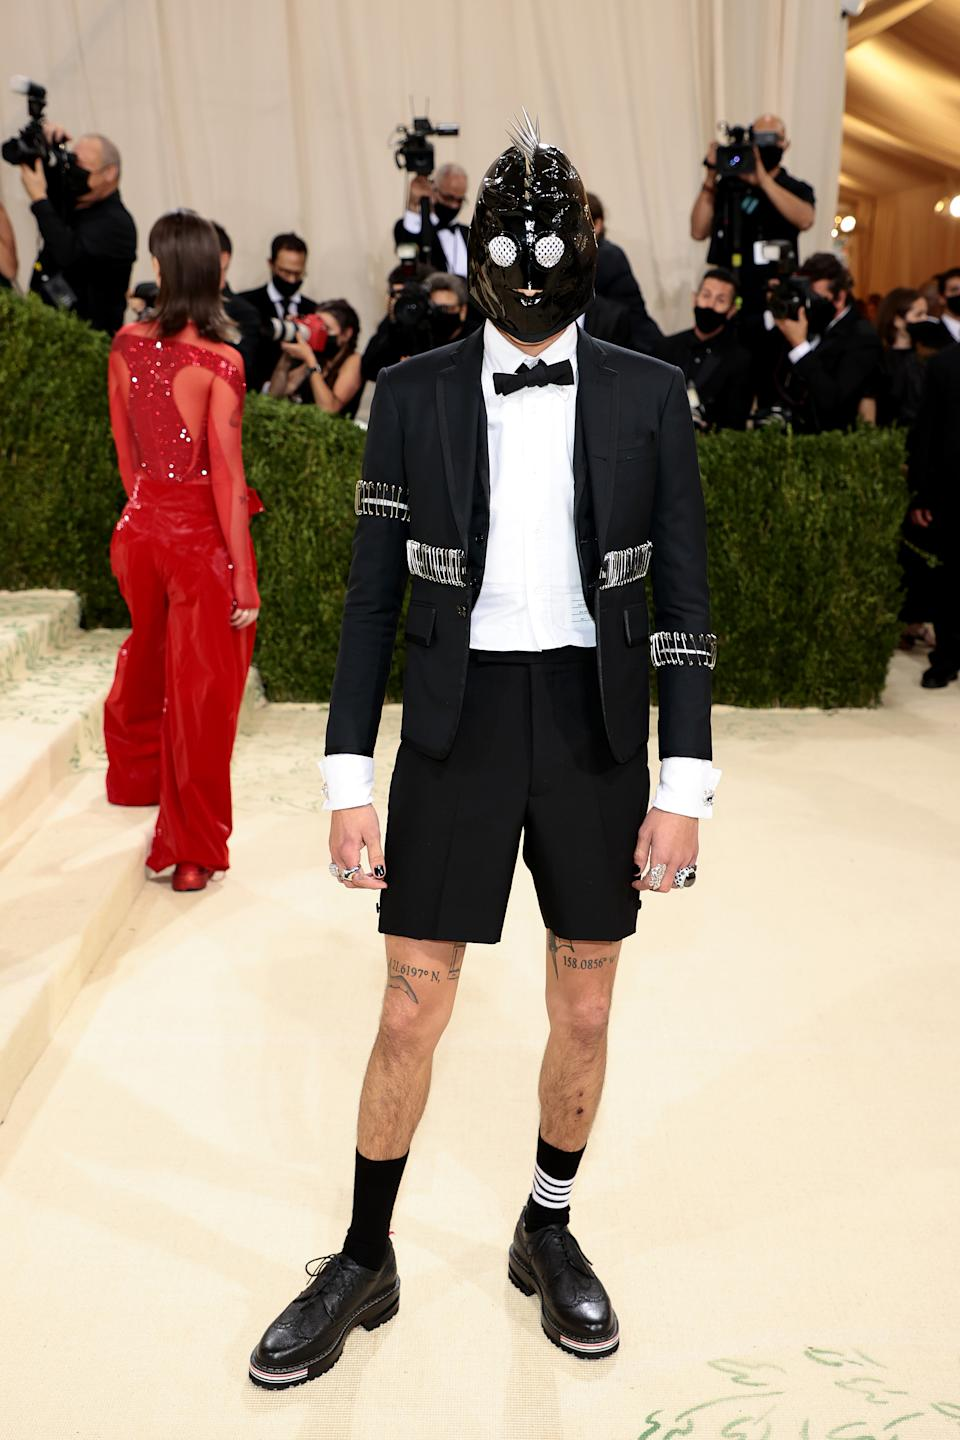 <p>Evan Mock. (Photo by Dimitrios Kambouris/Getty Images for The Met Museum/Vogue )</p>